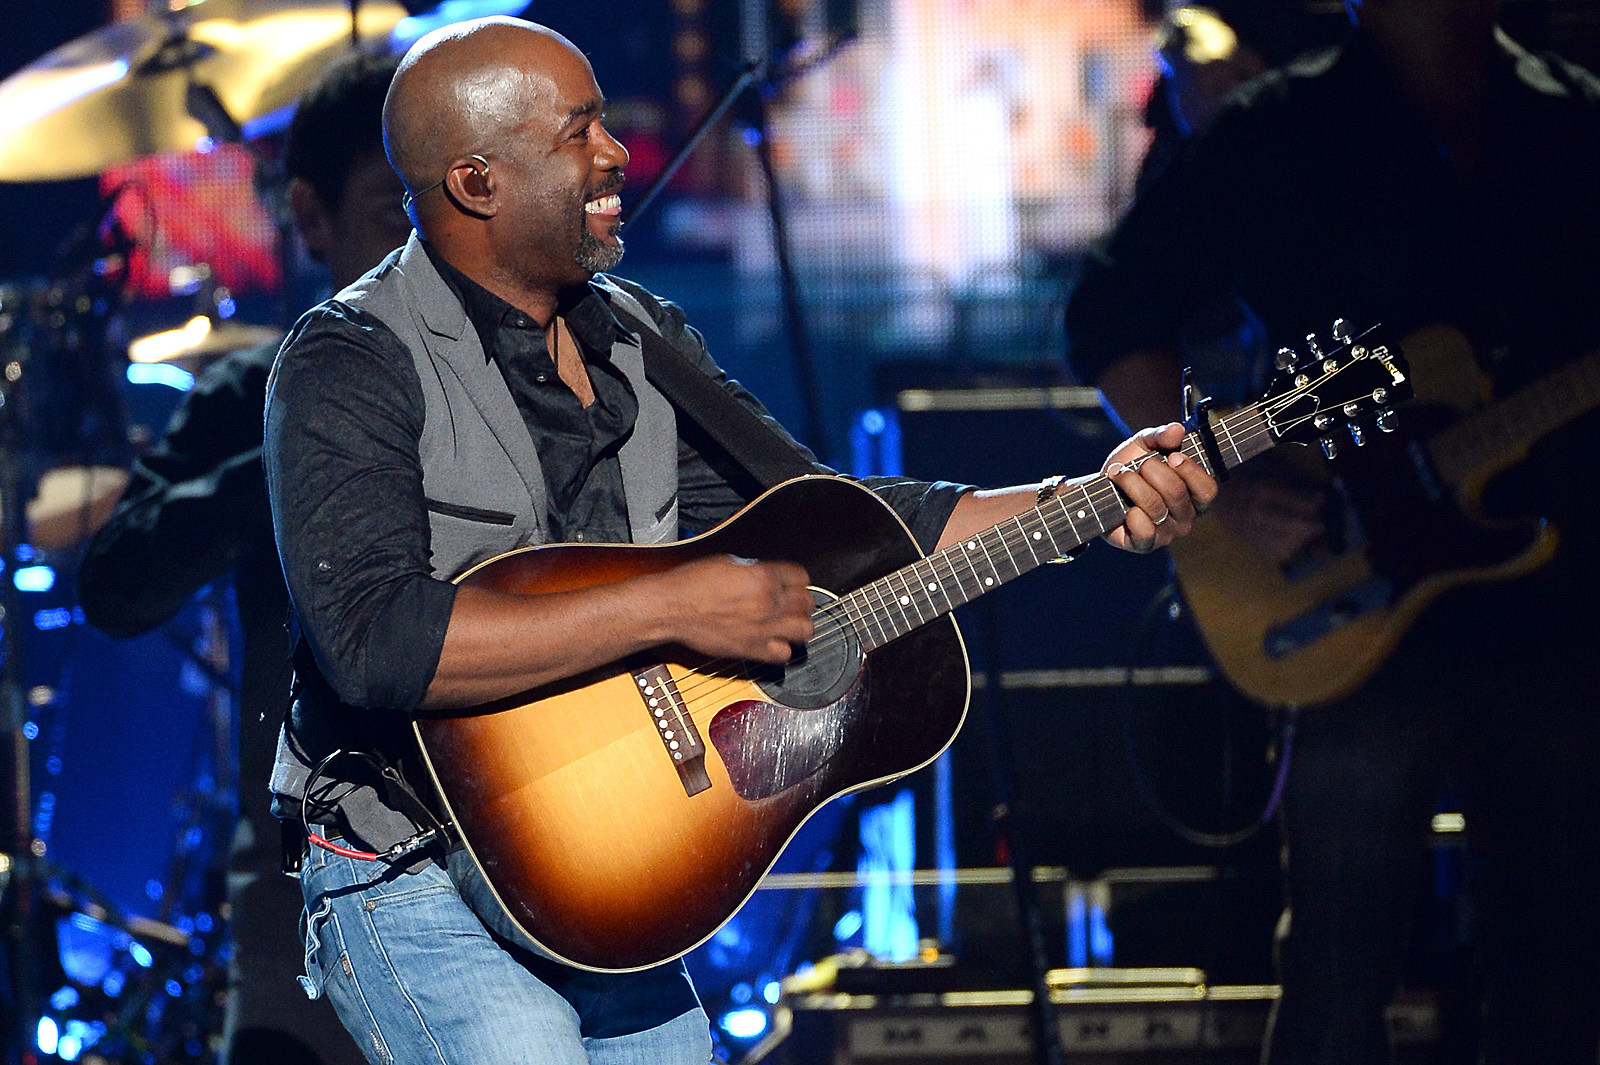 darius rucker 2016 tour dates, darius rucker 2016 good for a good time tour